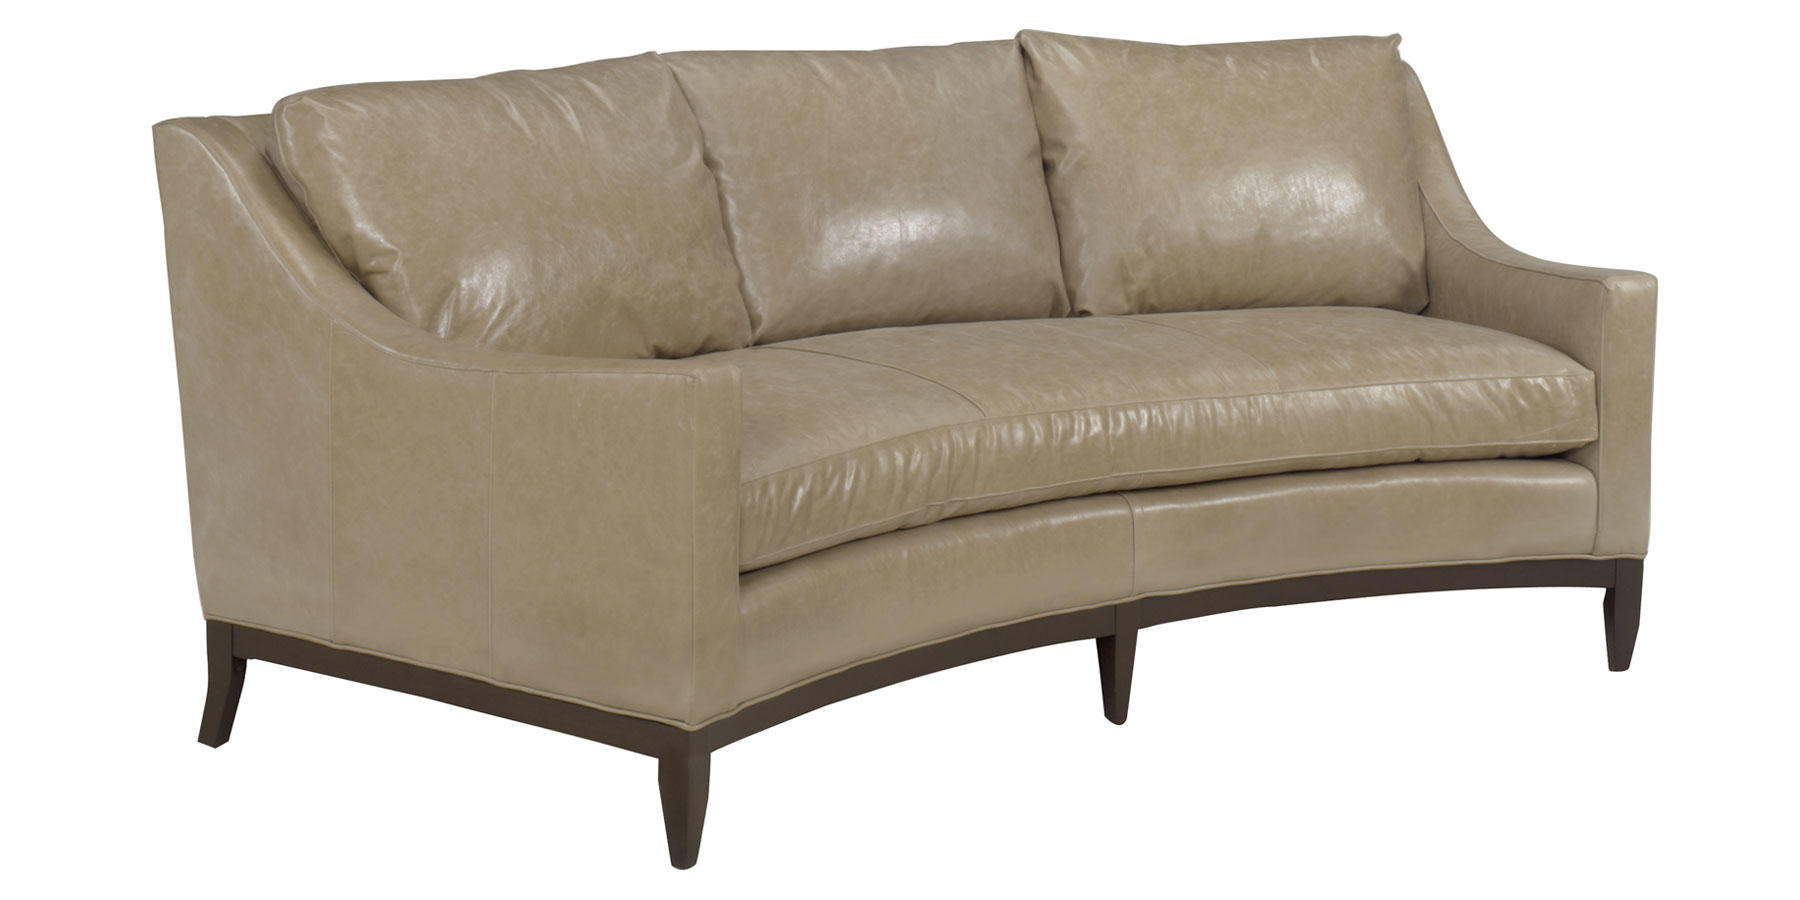 Cedric Designer Style Curved Conversation Sofa Leather Furniture